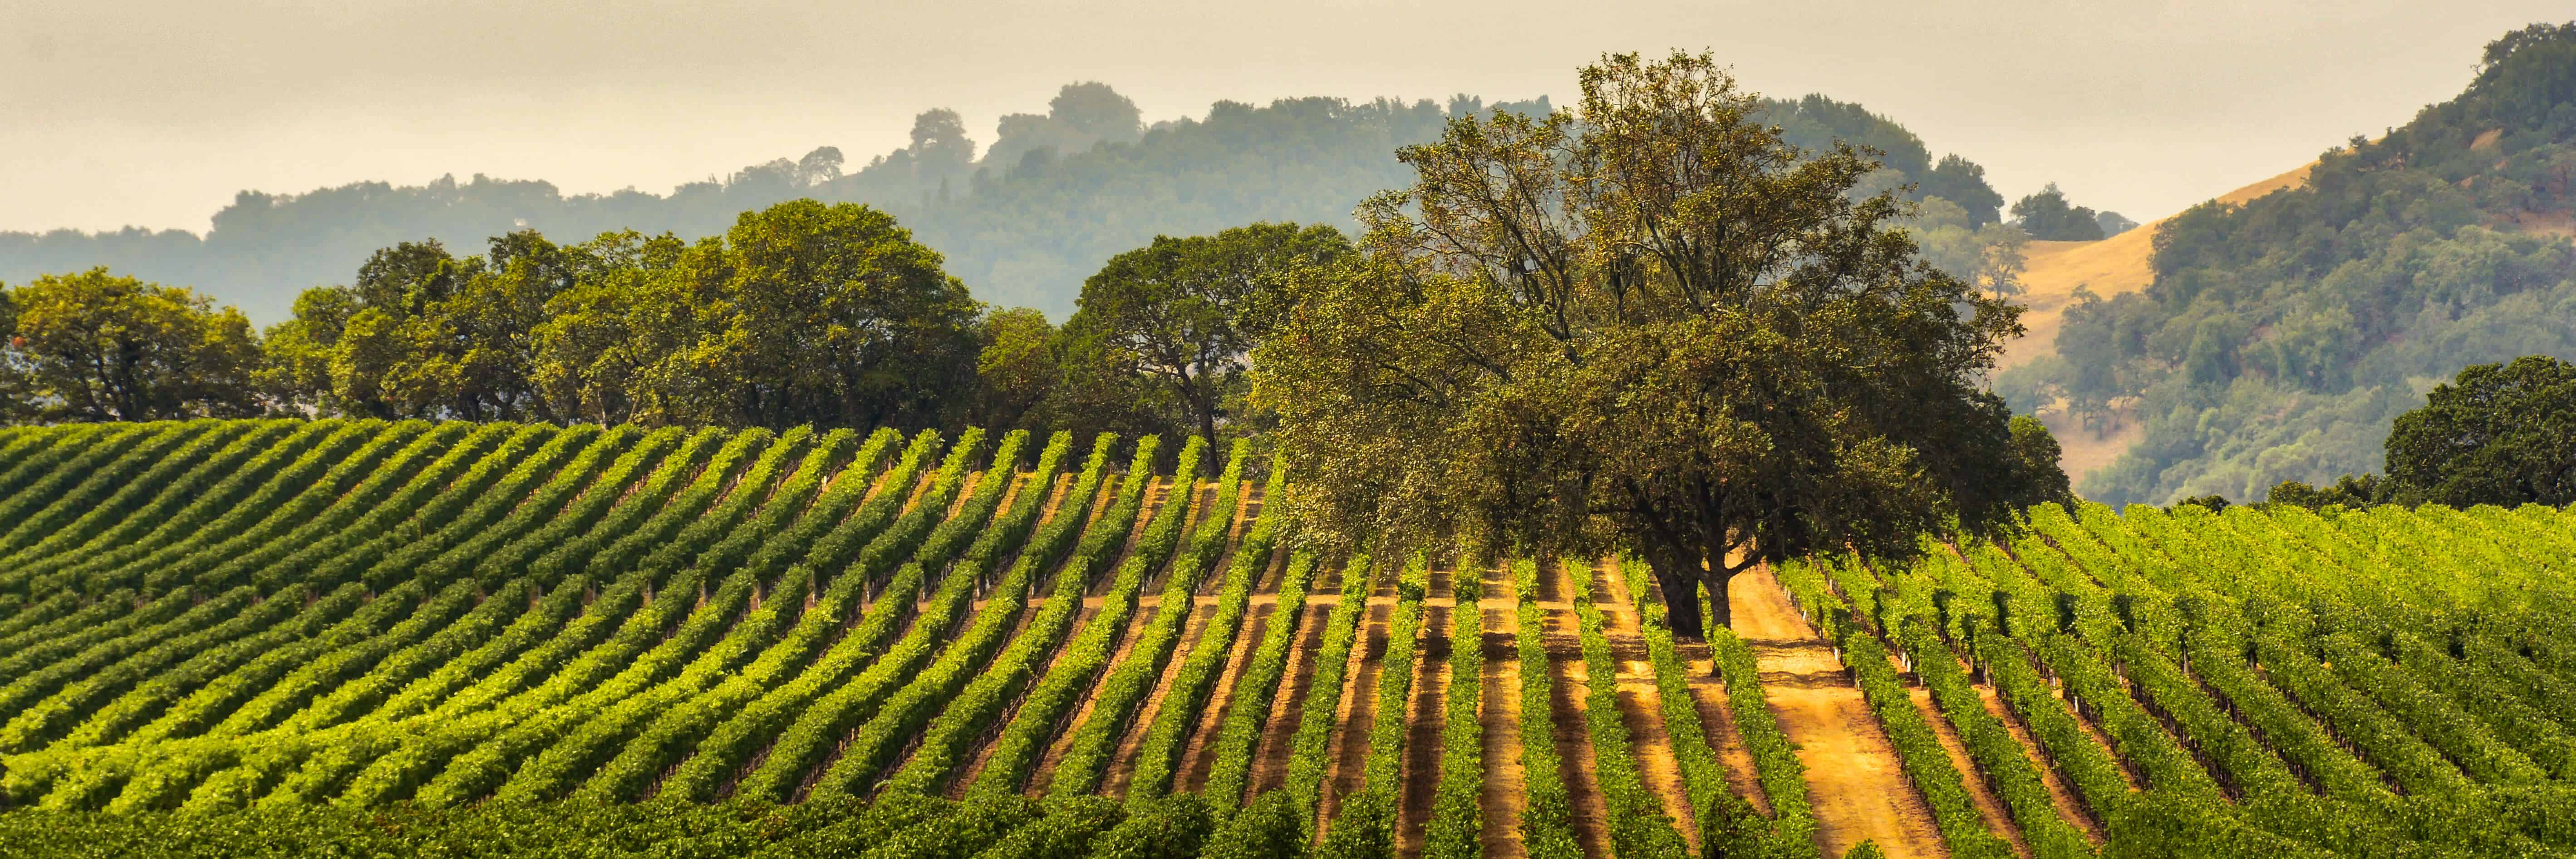 Vineyard, Sonoma County, California, wine